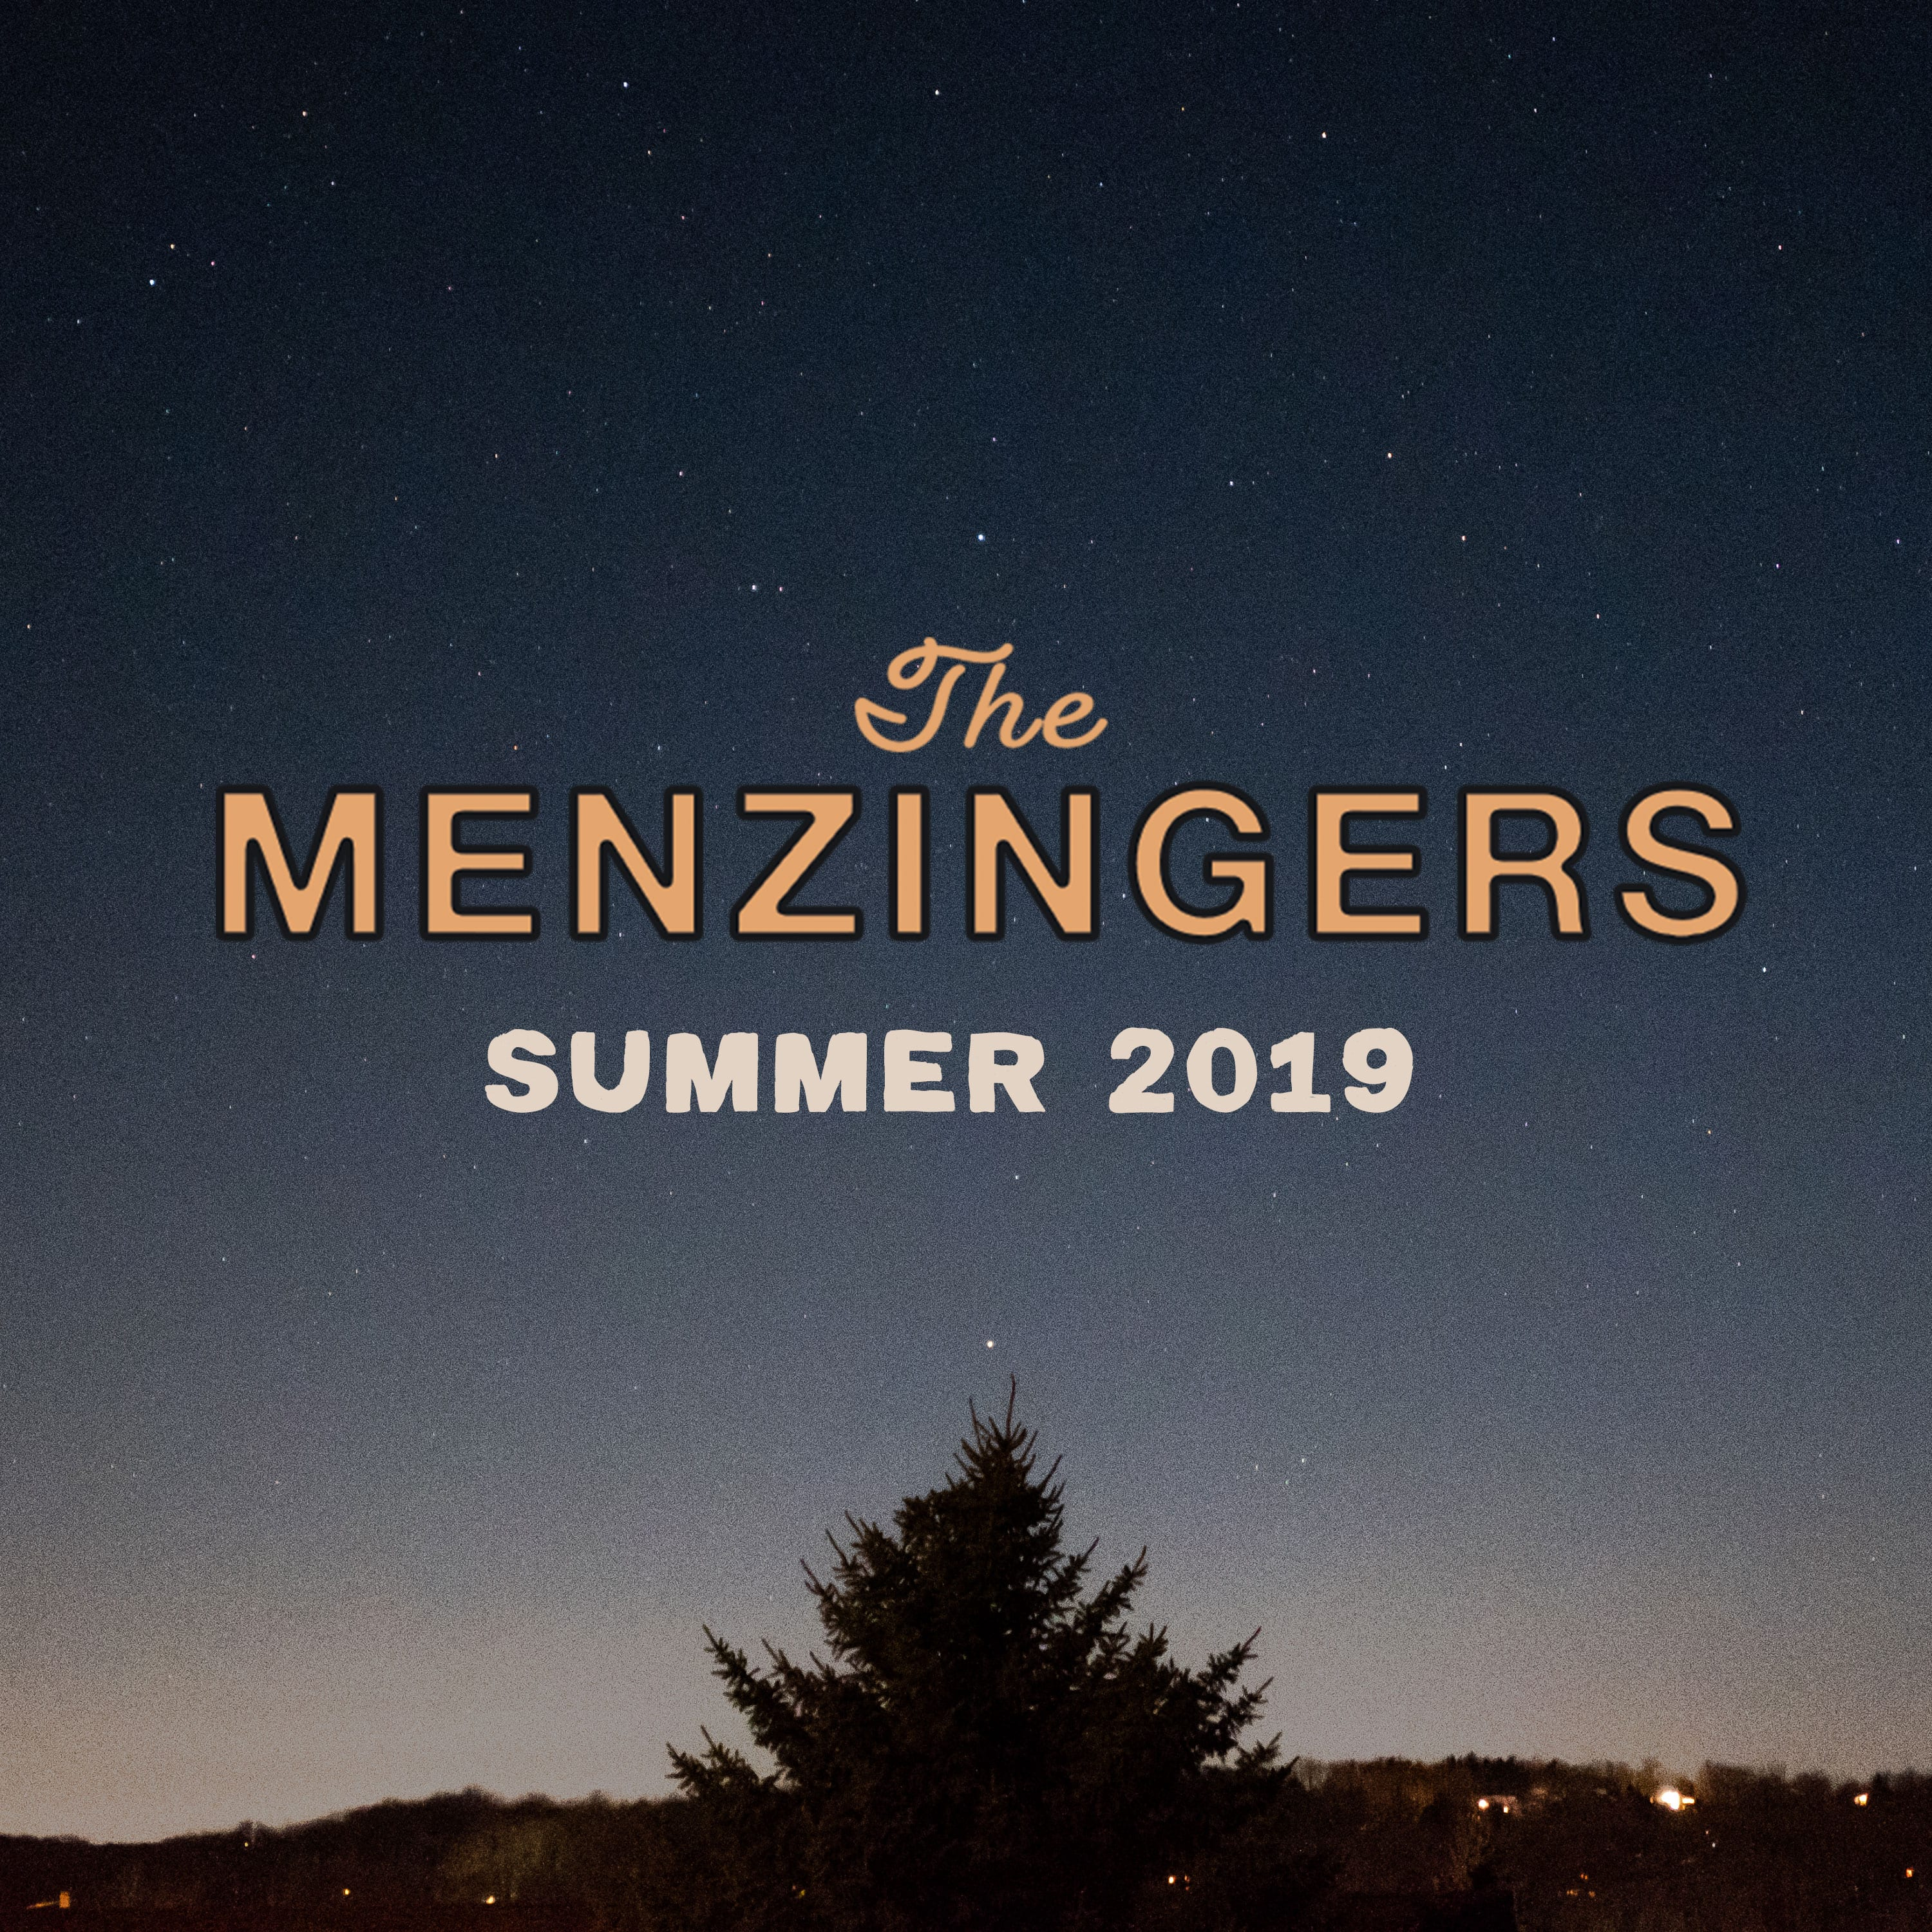 The Menzinges 2019 Summer Playlist